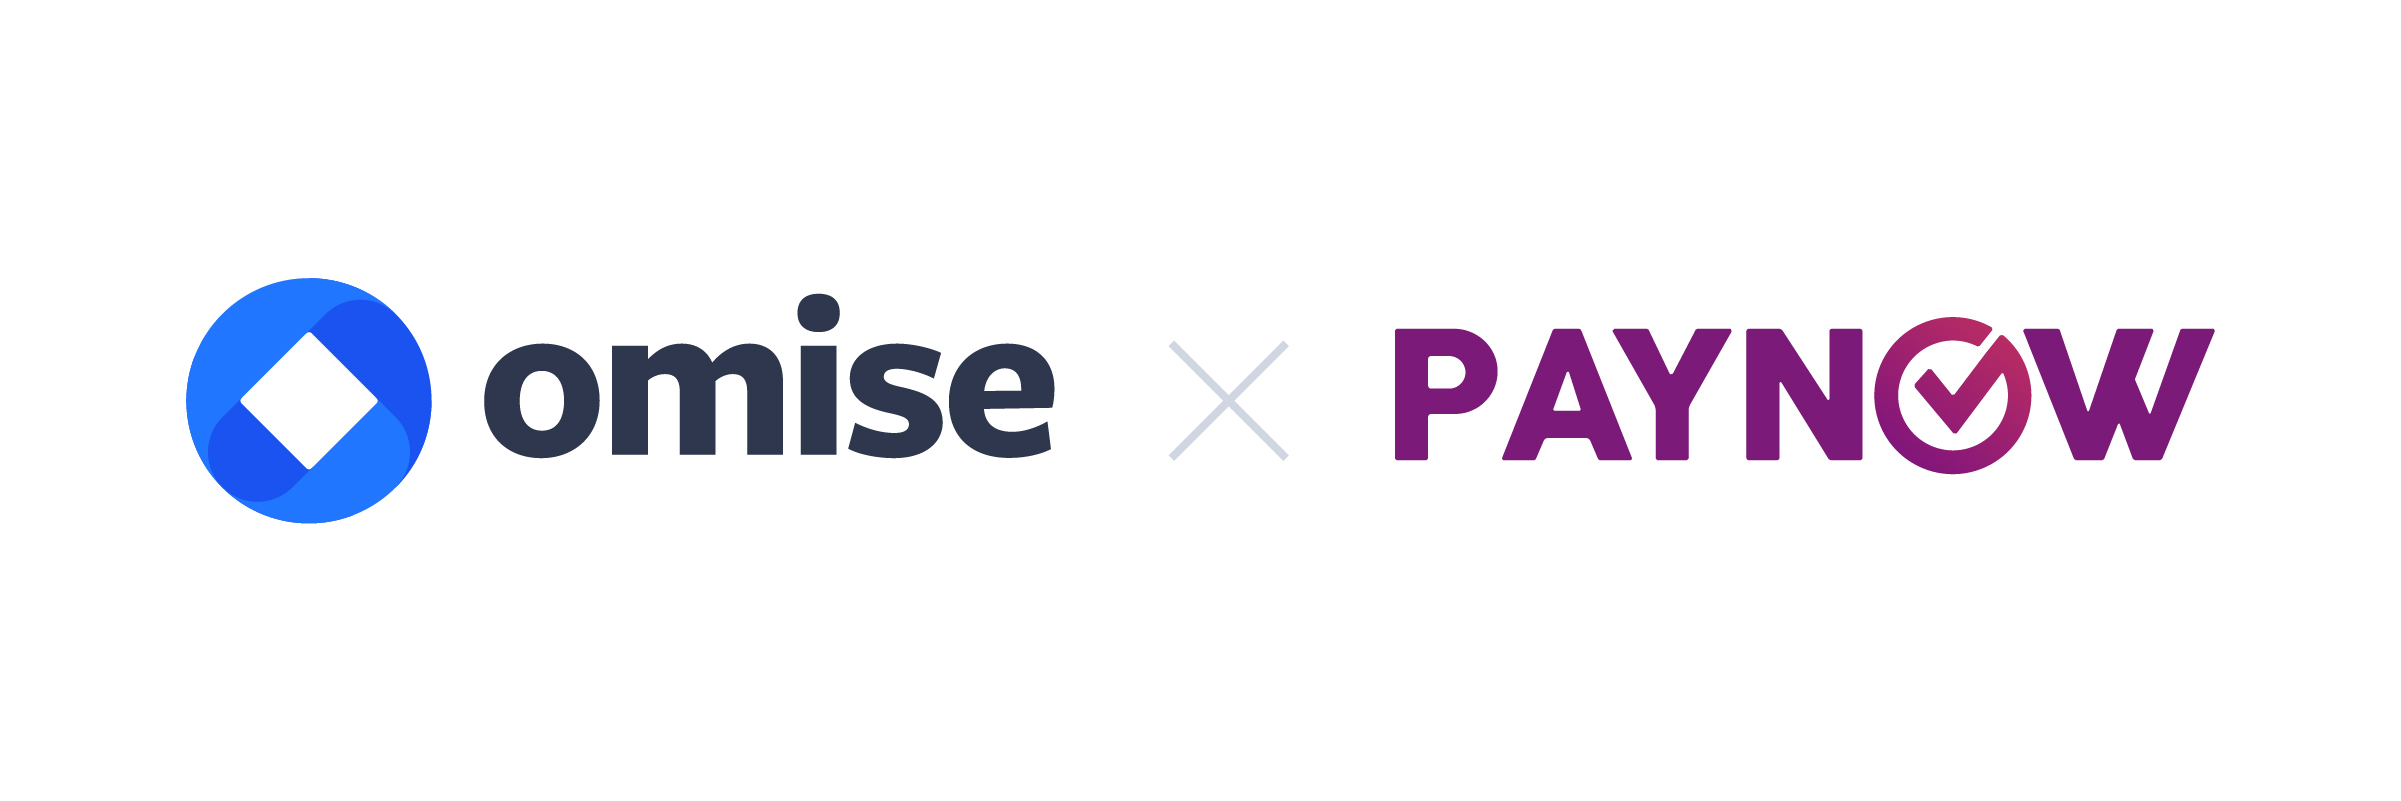 omise x paynow